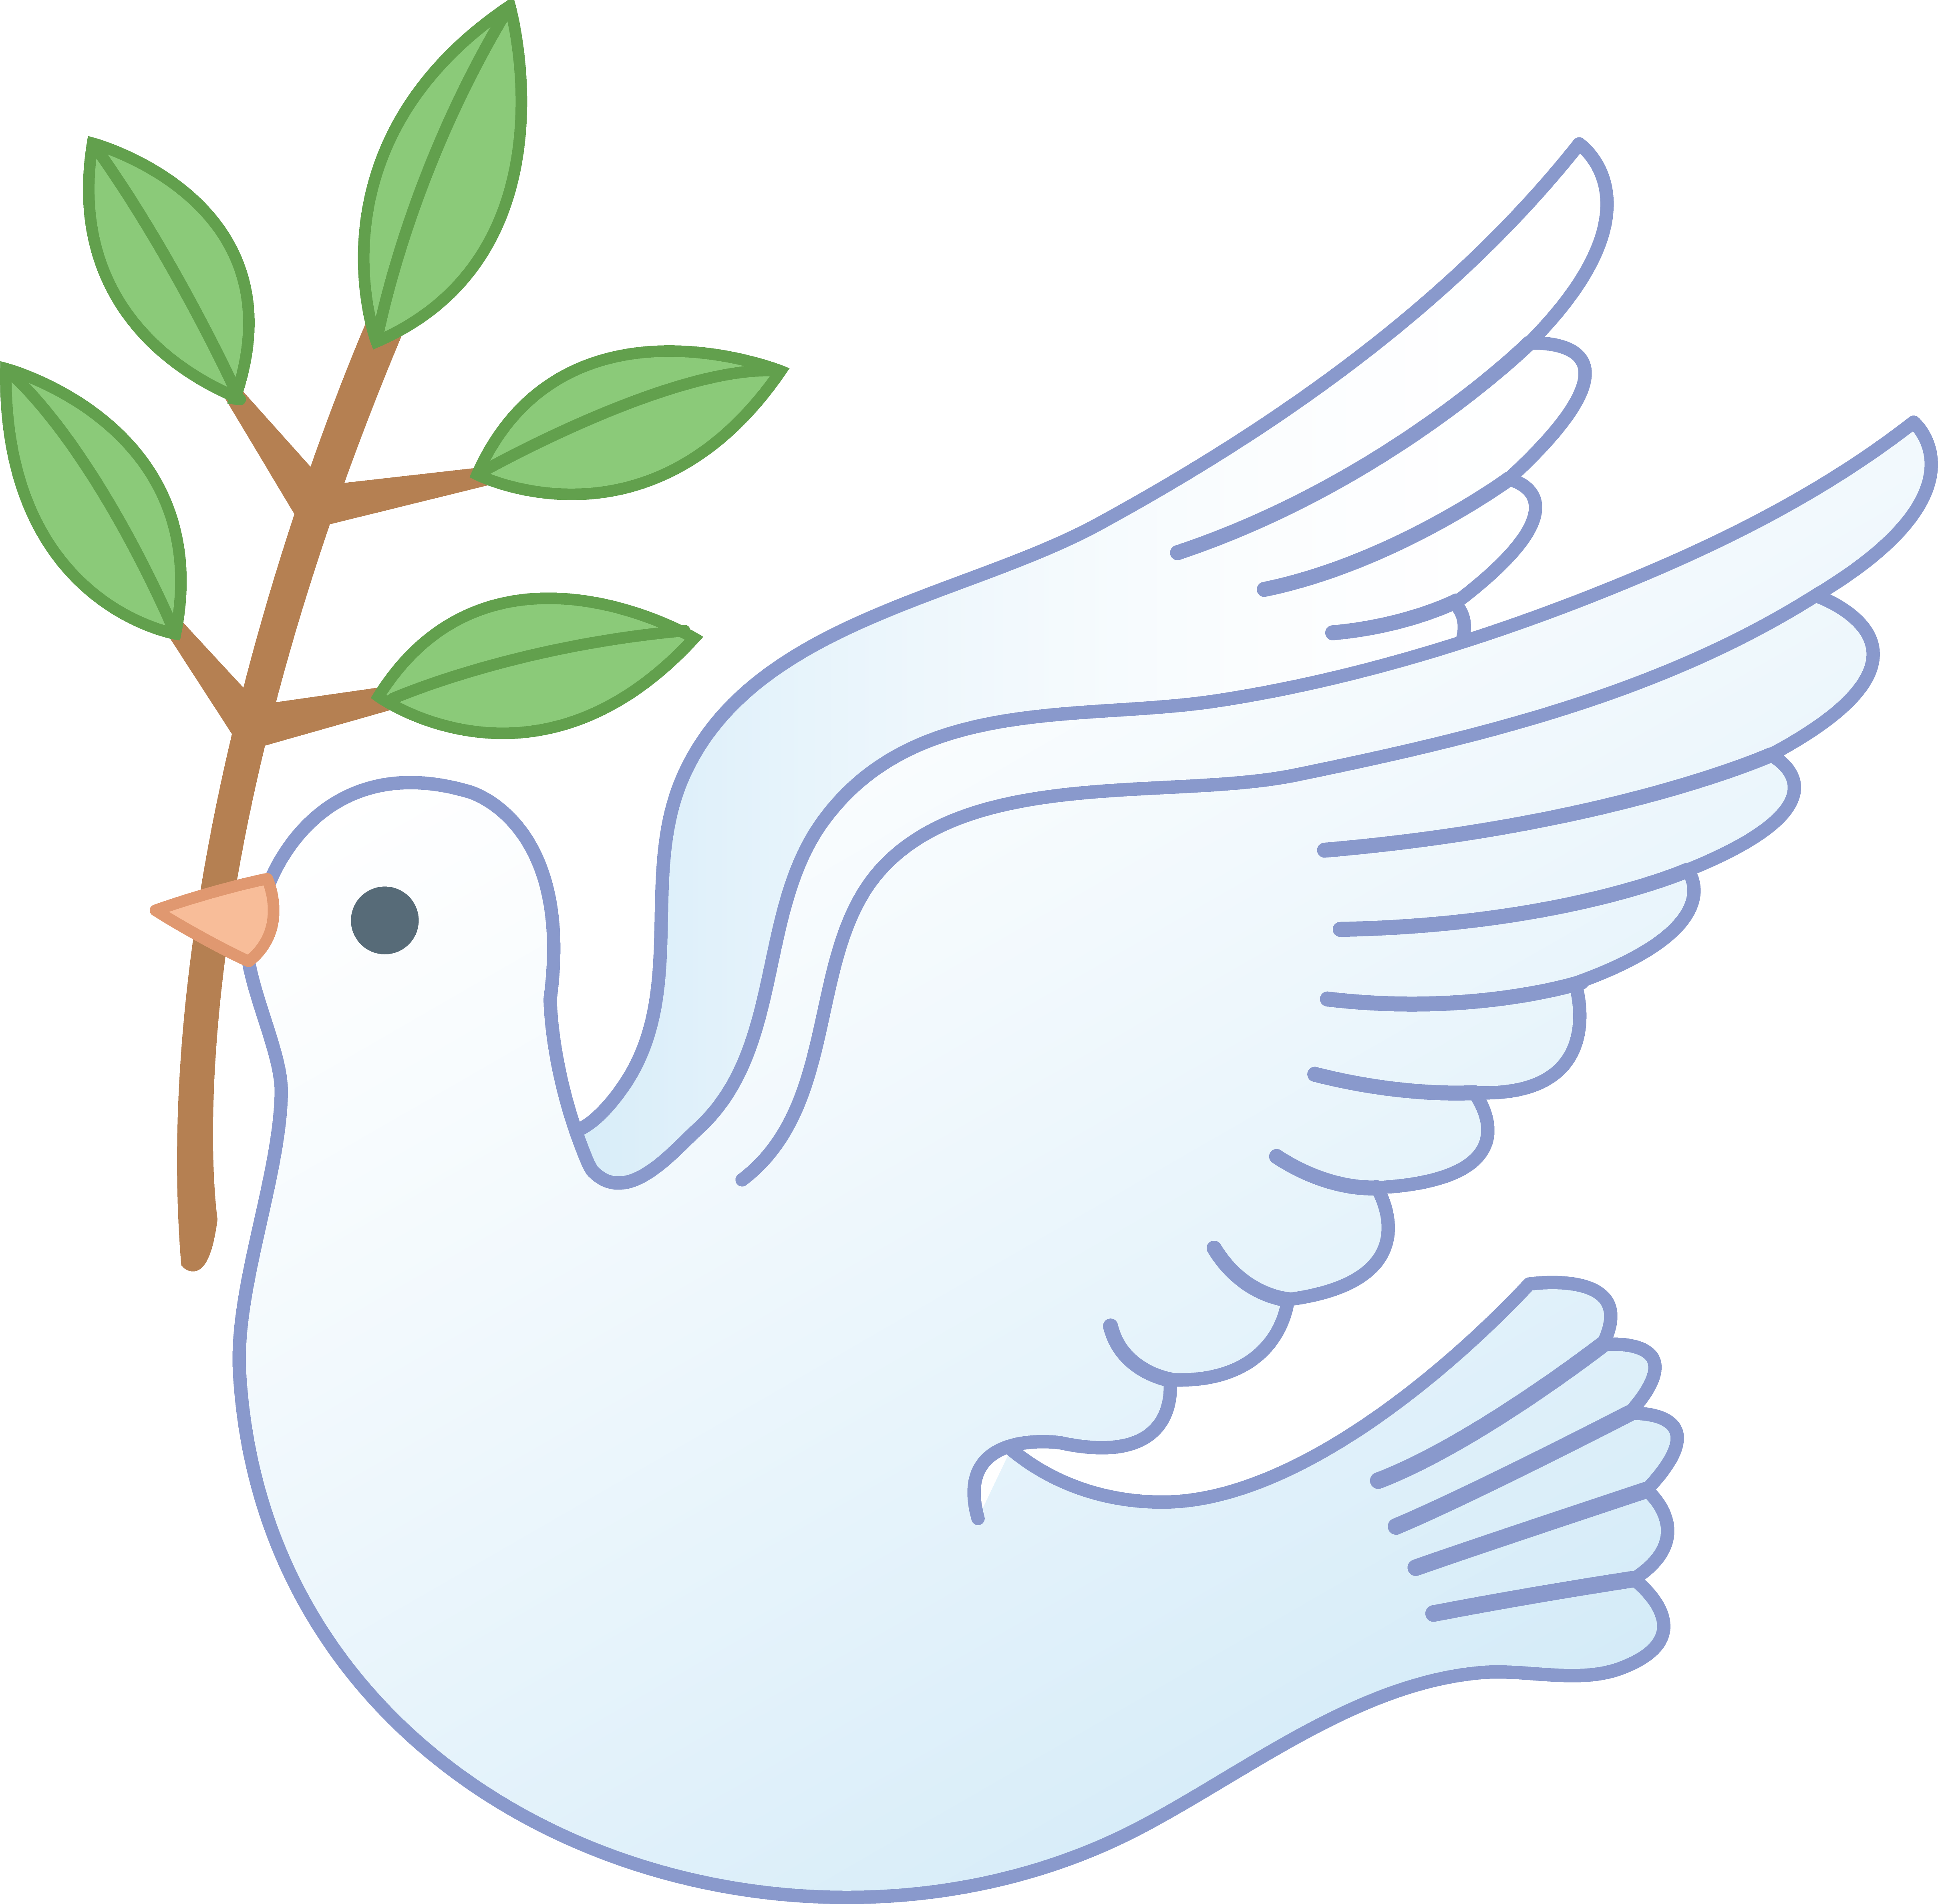 Lds clipart peace. Dove with olive branch